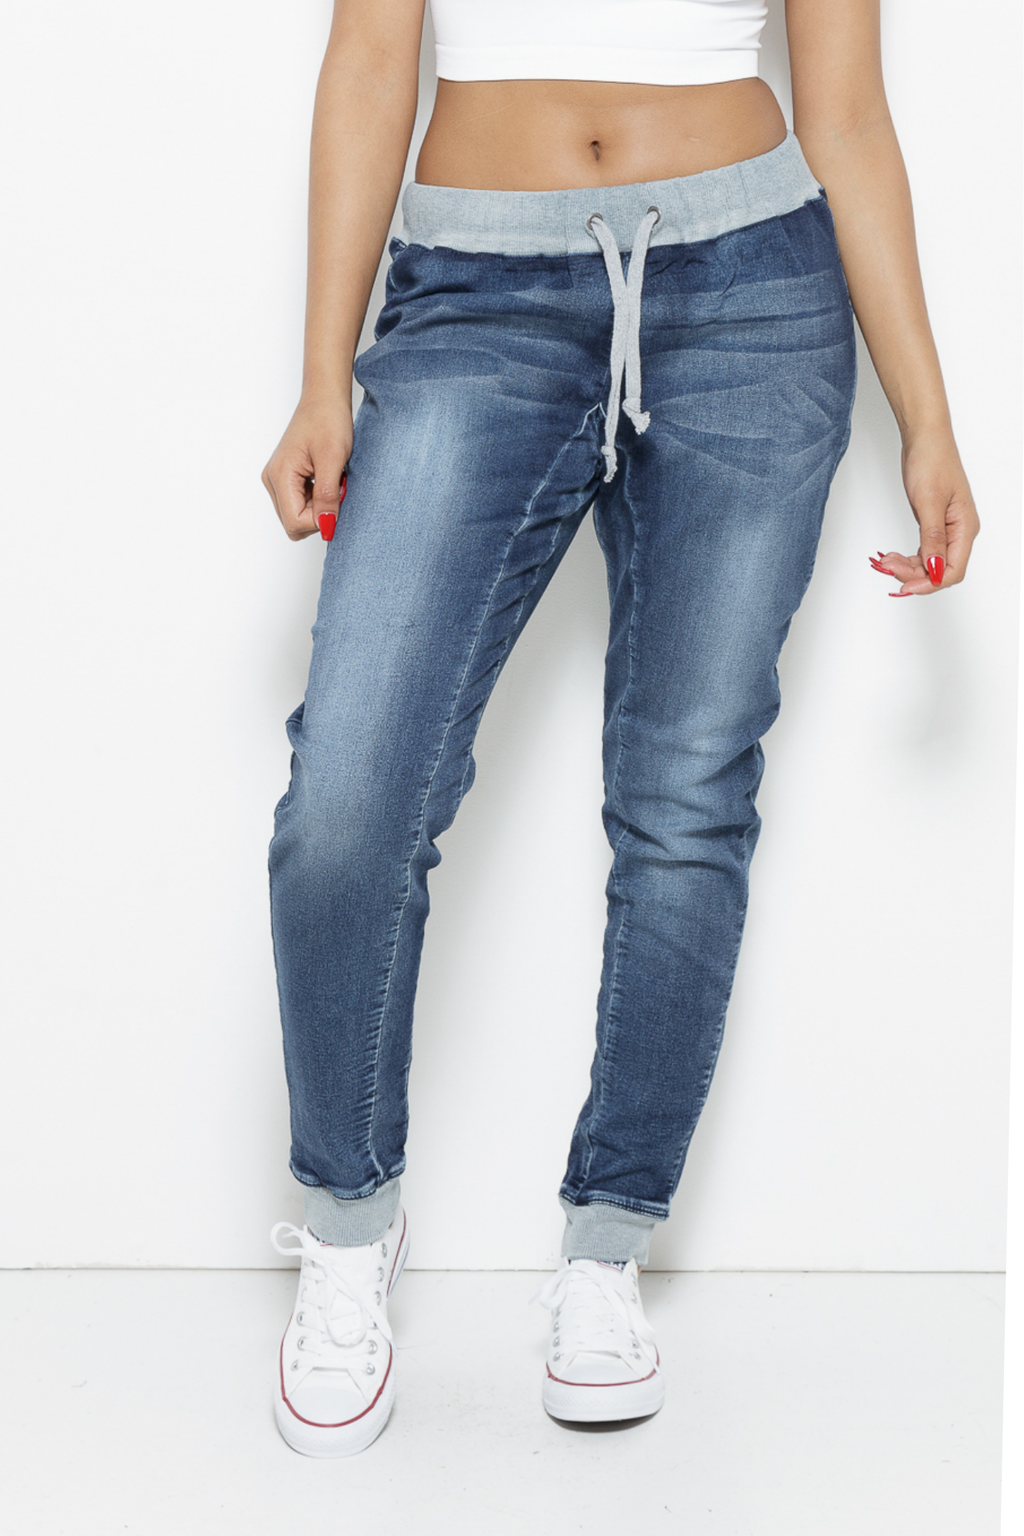 fair-shade - Jeanie Jogger Denim Jeans - Clothing